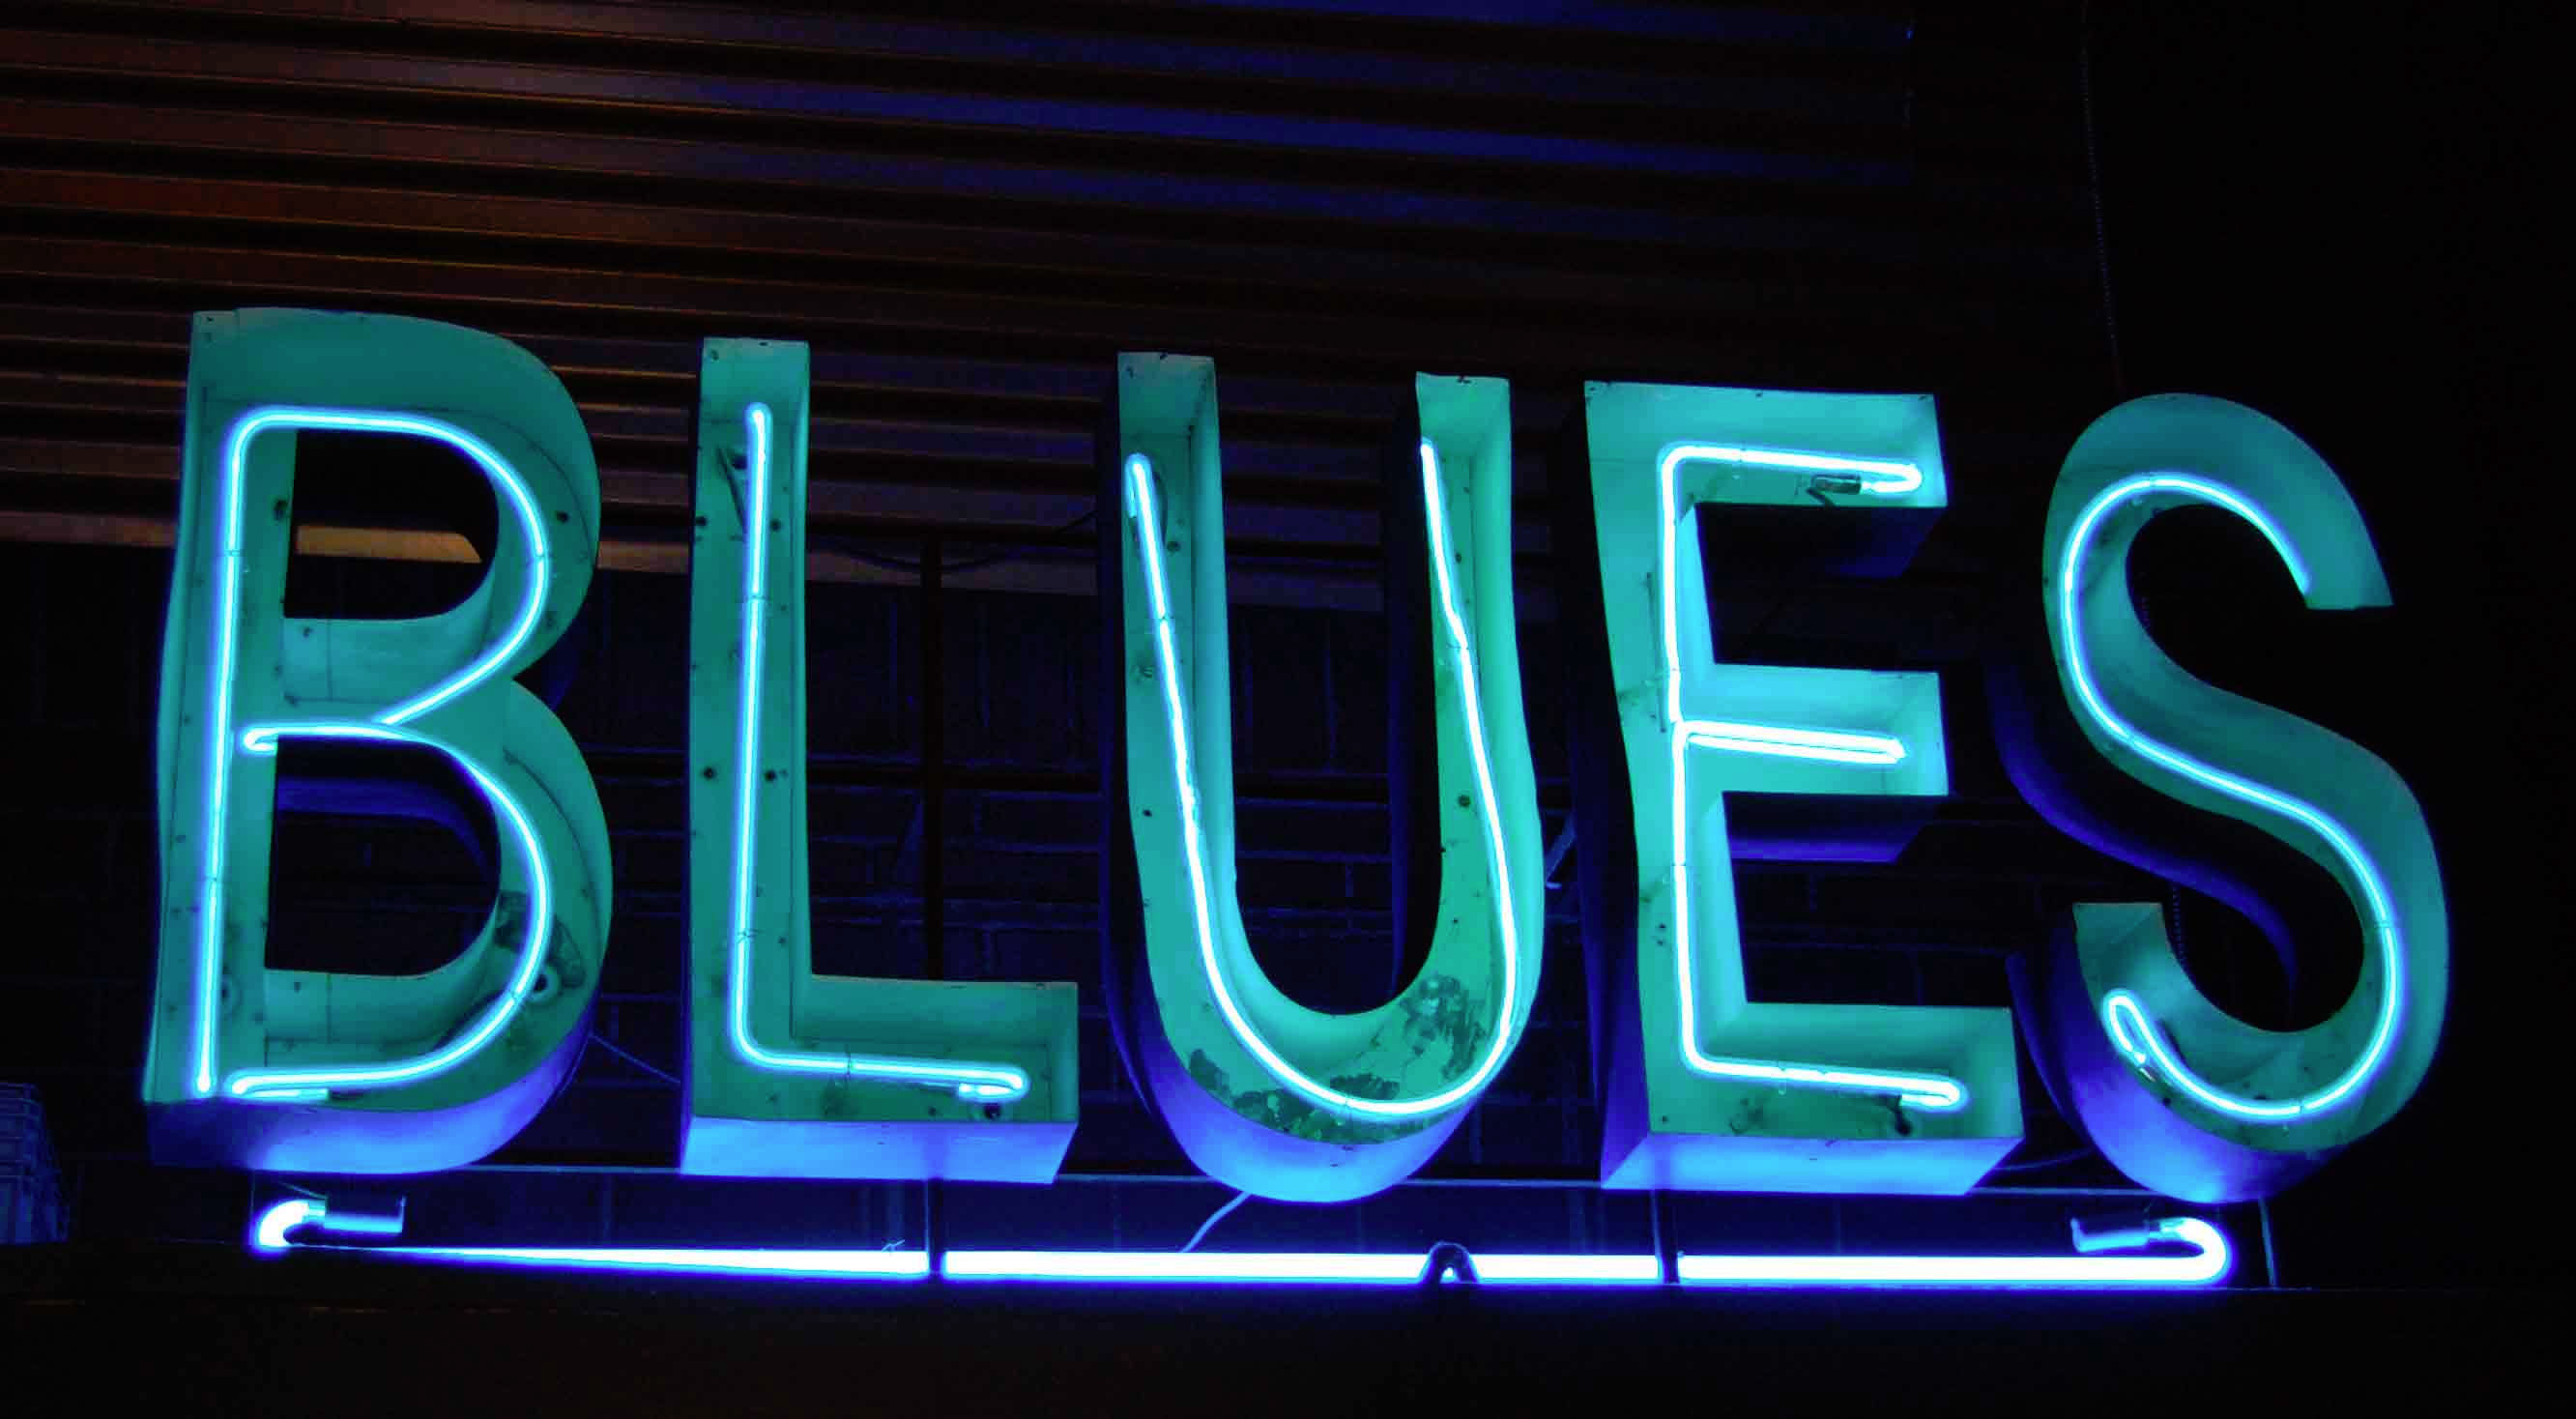 a history of blues music Unlike other blues museums, which are dedicated to a regional style or a single musician, this new museum is dedicated to the history of the blues and how it influenced music and culture across .